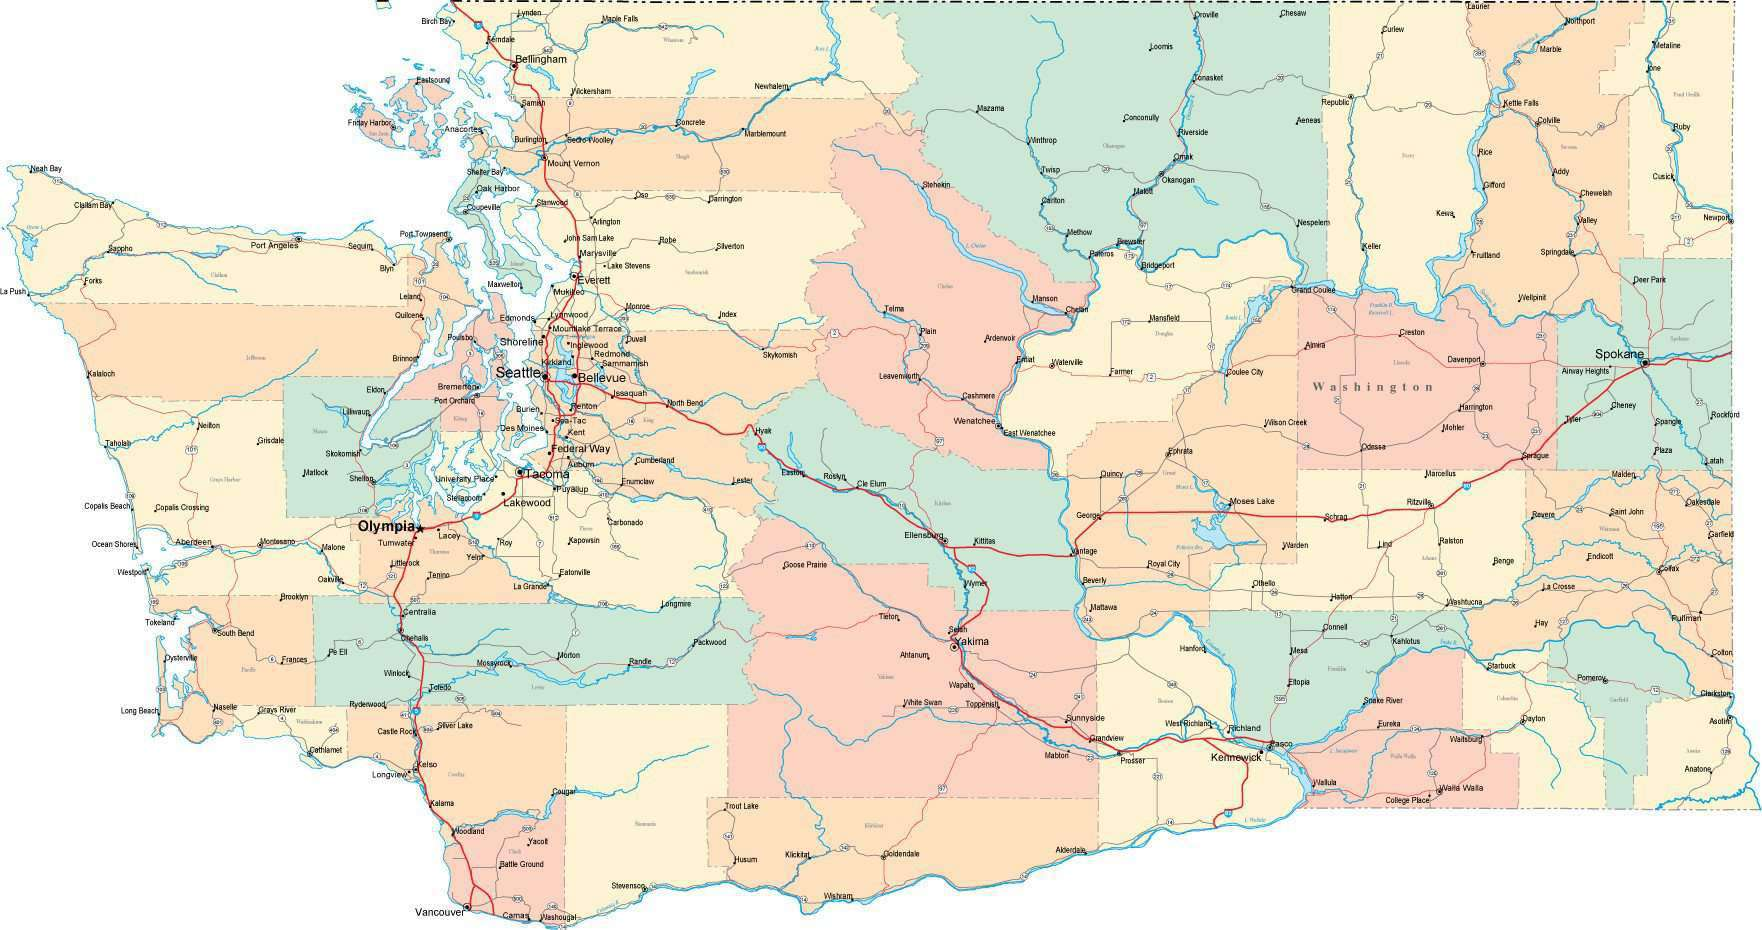 Washington State Map - Multi-Color Style - Fit Together Series